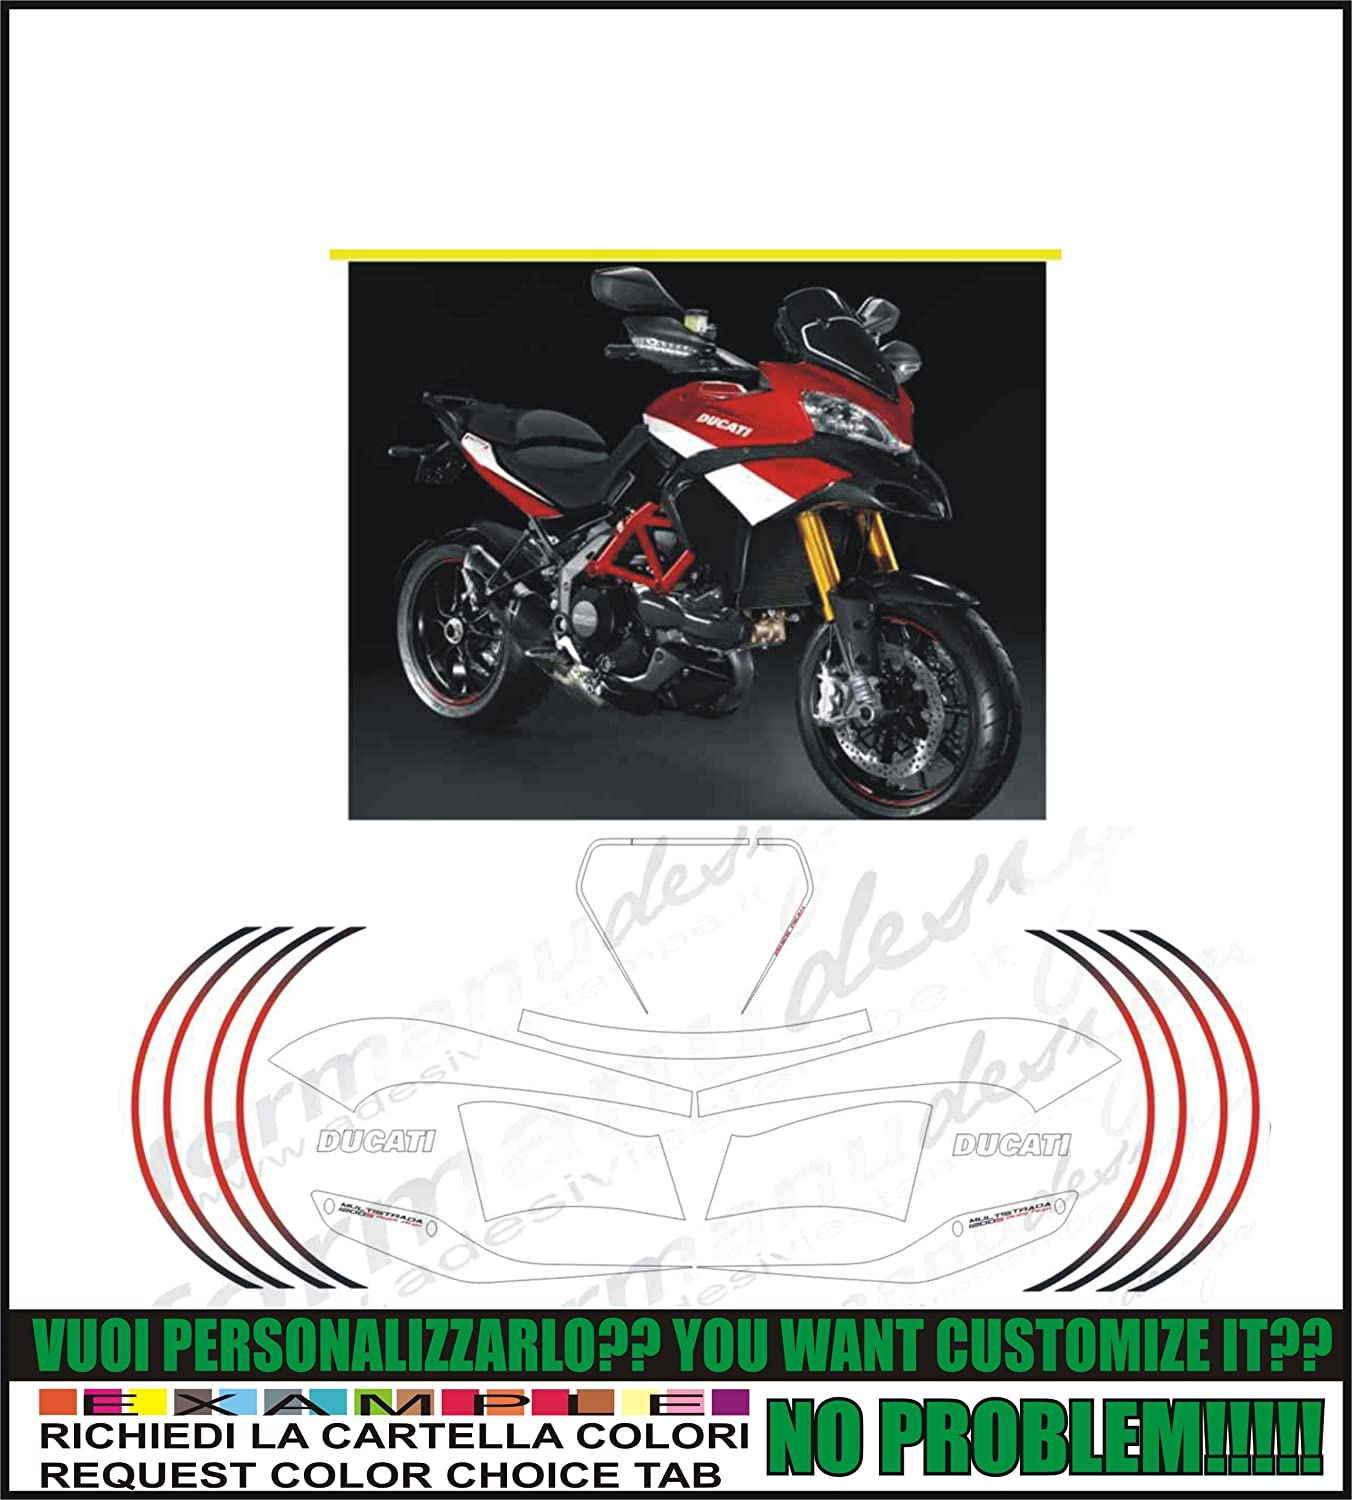 Kit adesivi decal stikers DUCATI MULTISTRADA 1200 S PIKES PEAK (ability to customize the colors) Emanuel & Co